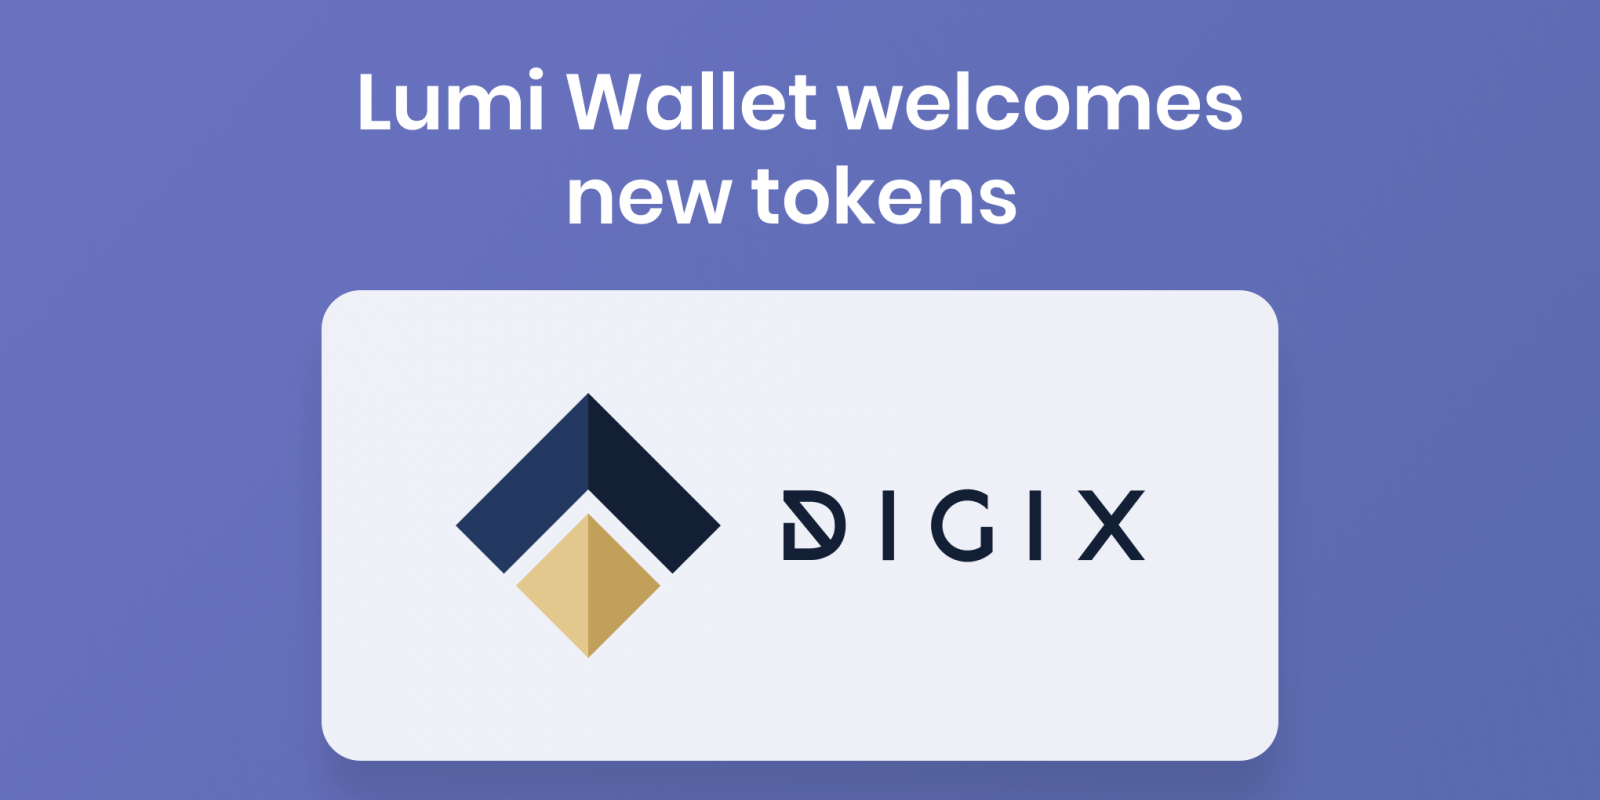 dgd token and dgx token in lumi wallet